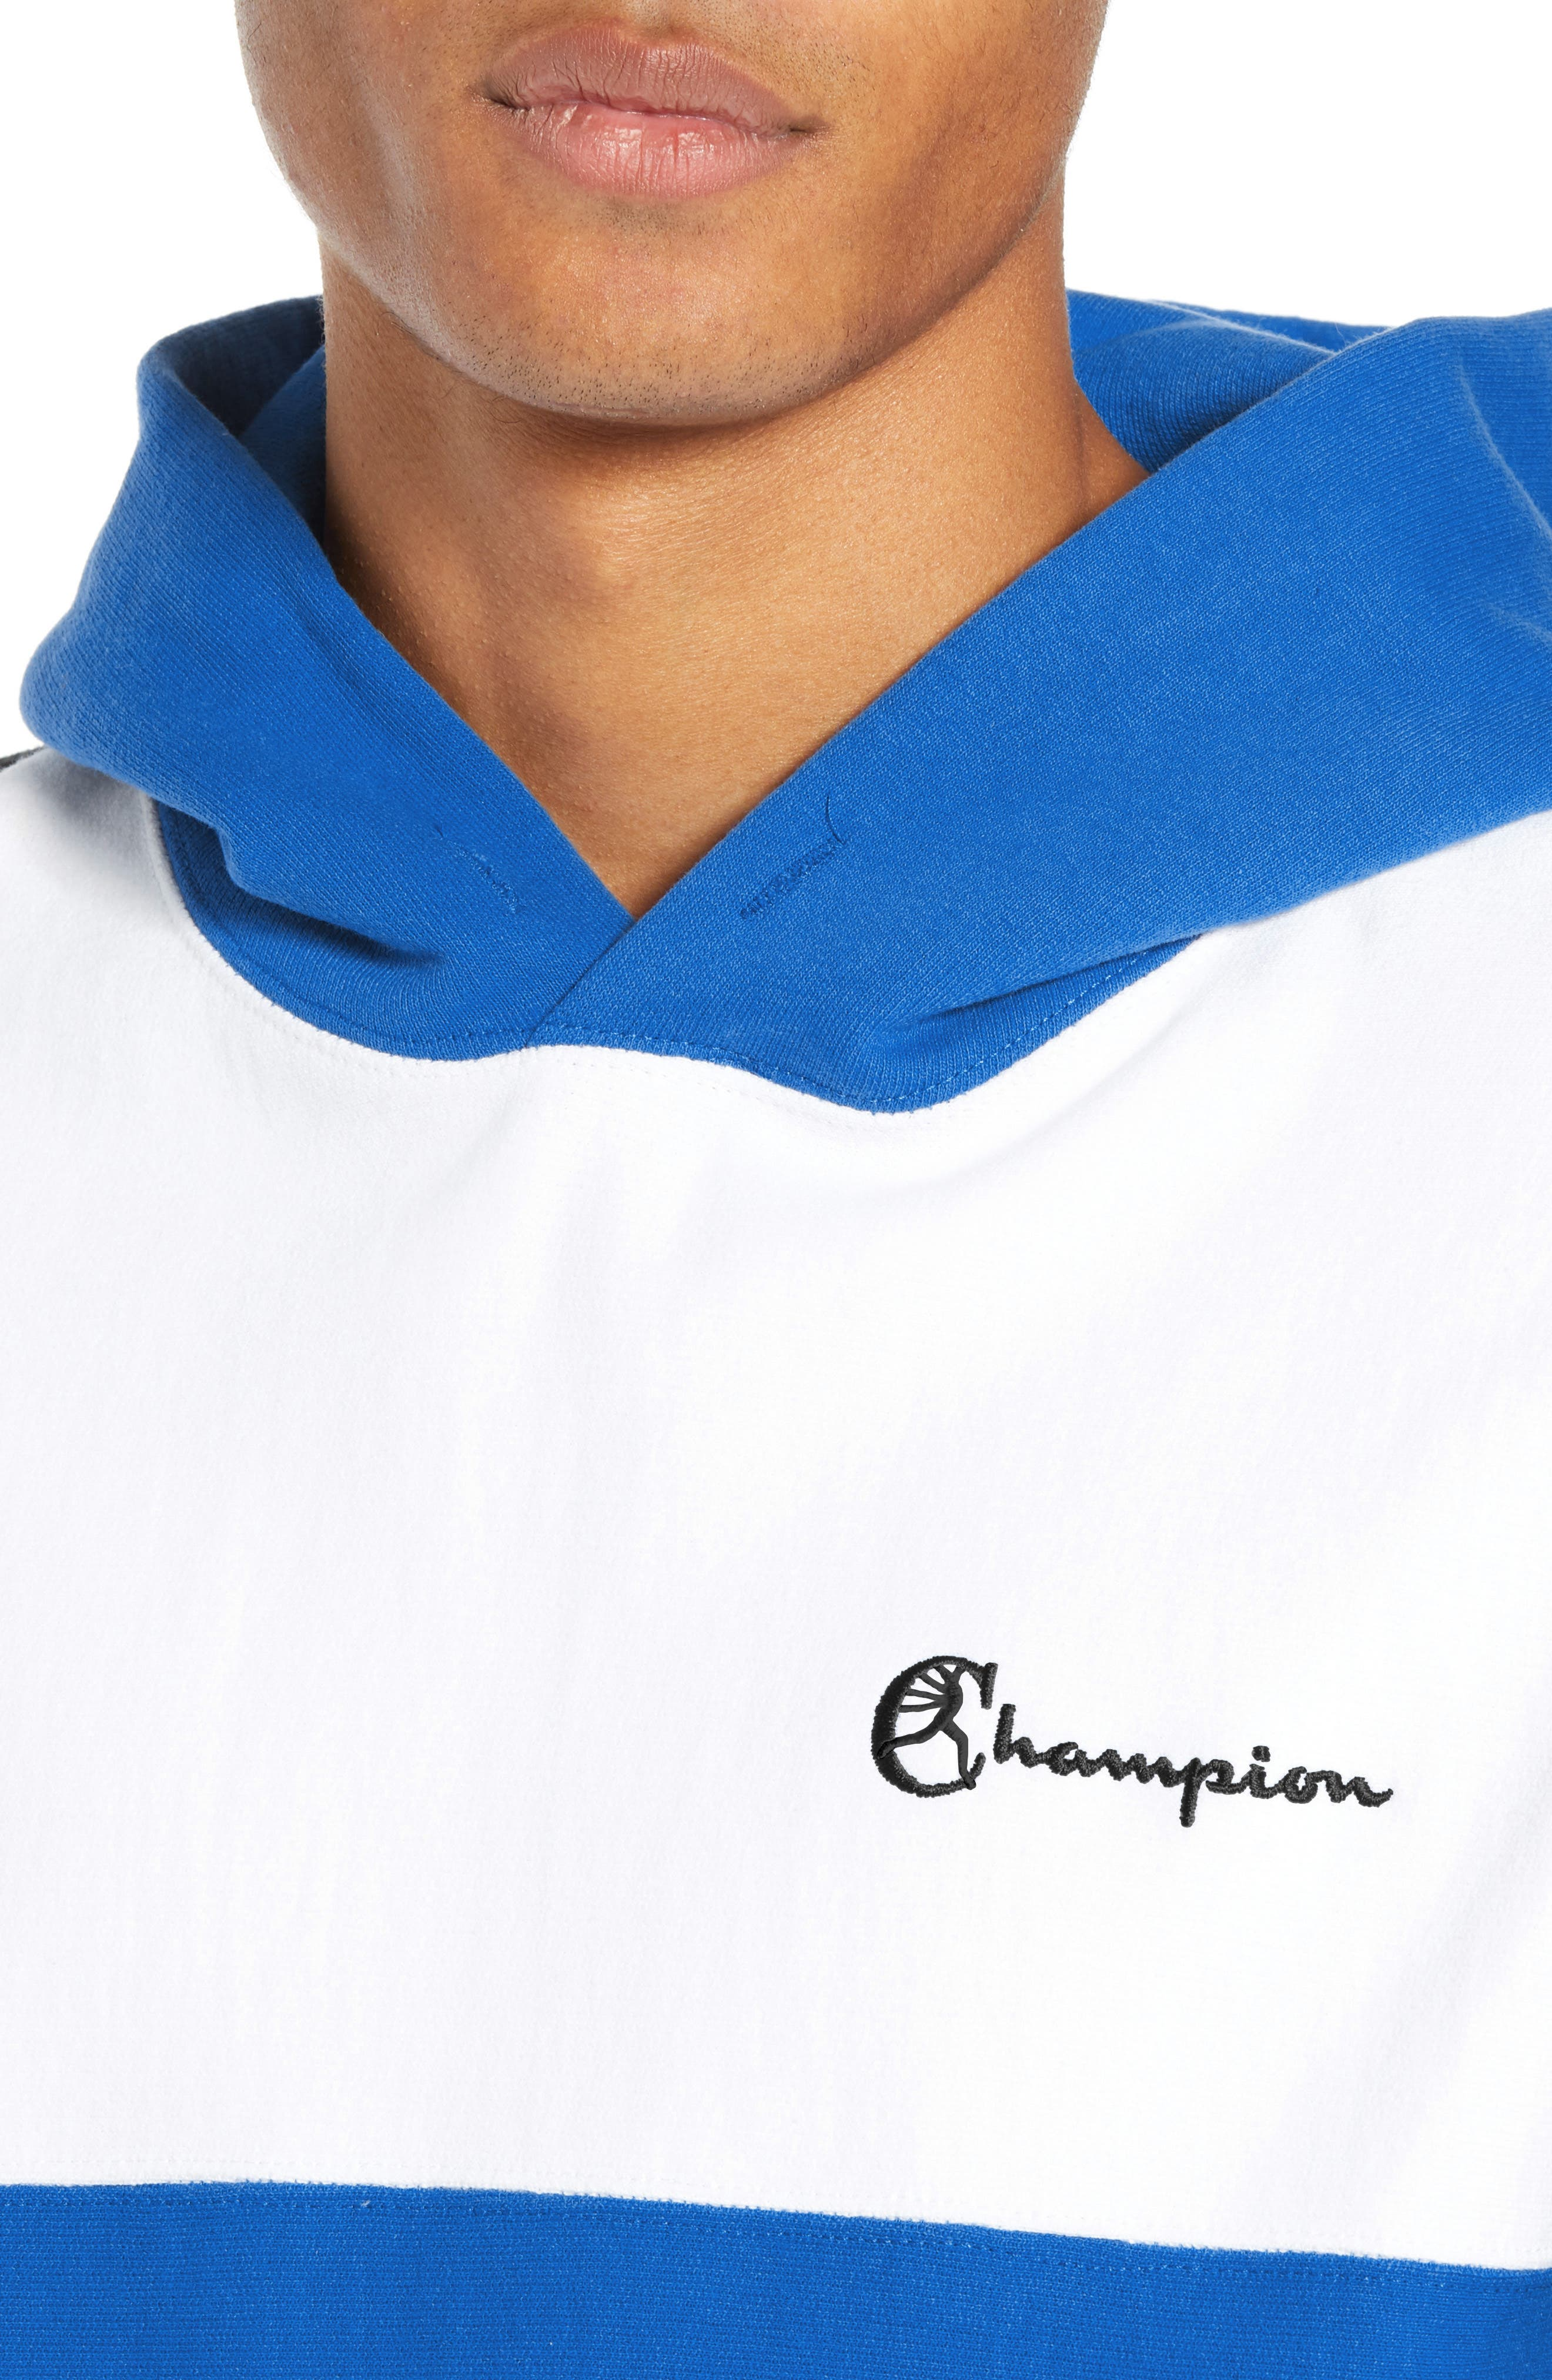 Regular Fit Colorblock Hoodie,                             Alternate thumbnail 4, color,                             BLUE